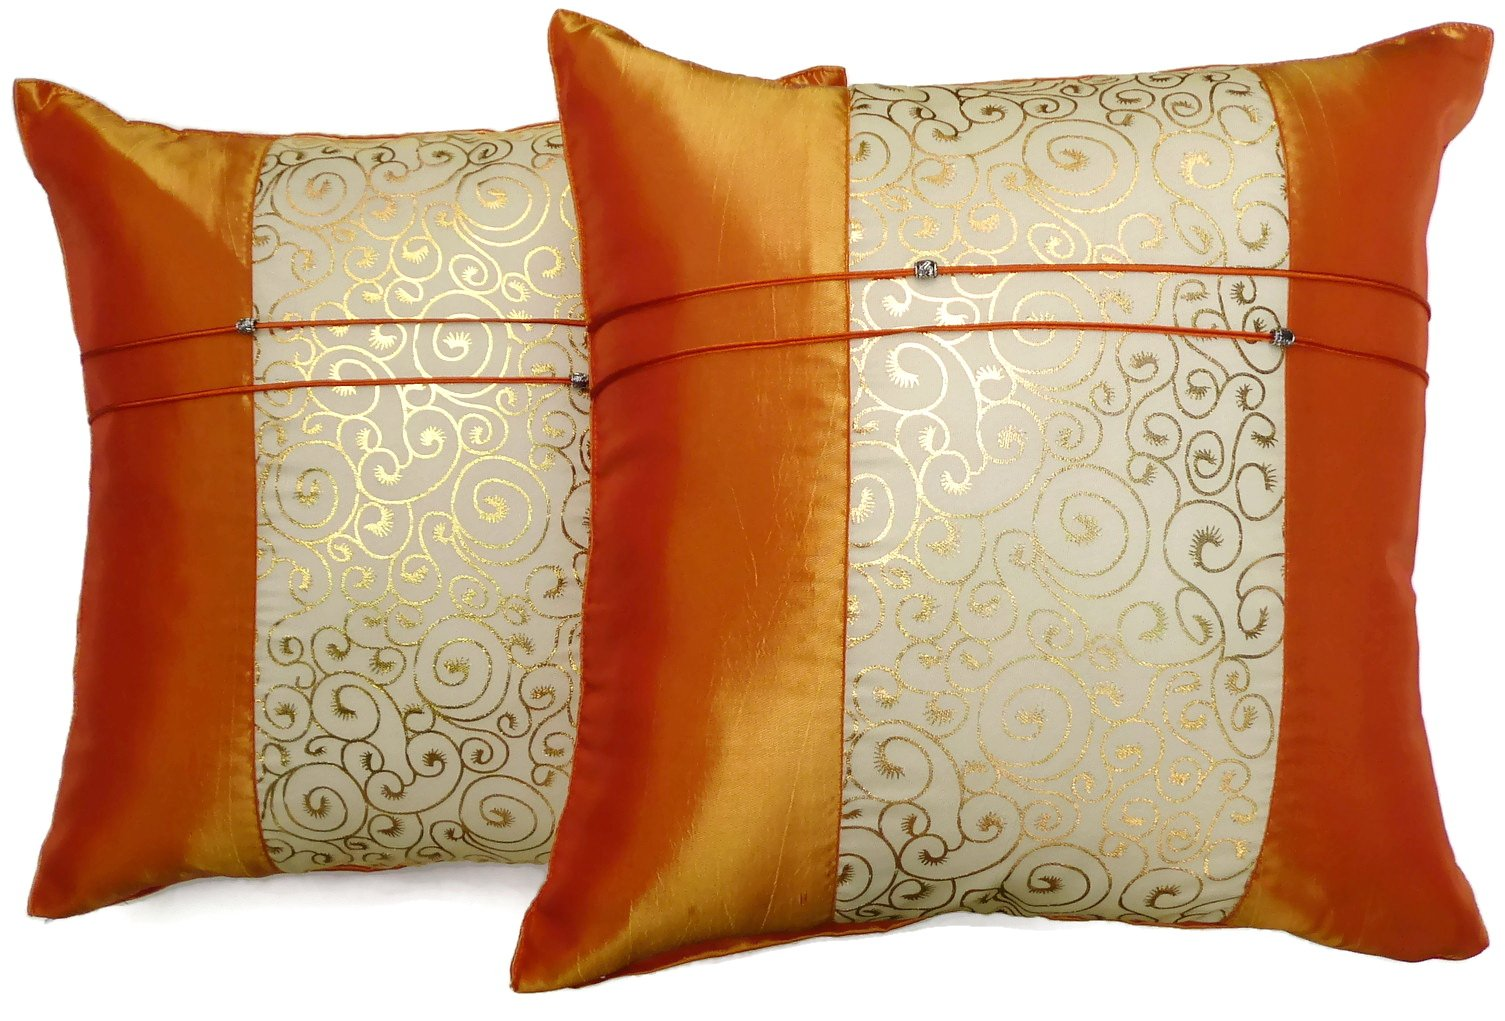 Set of Two Orange Silk Throw Cushion Pillow Covers Gold Print Middle Stripe for Decorative Living Room, Bed room Sofa Car Size 16 x16 Inches by Moose546